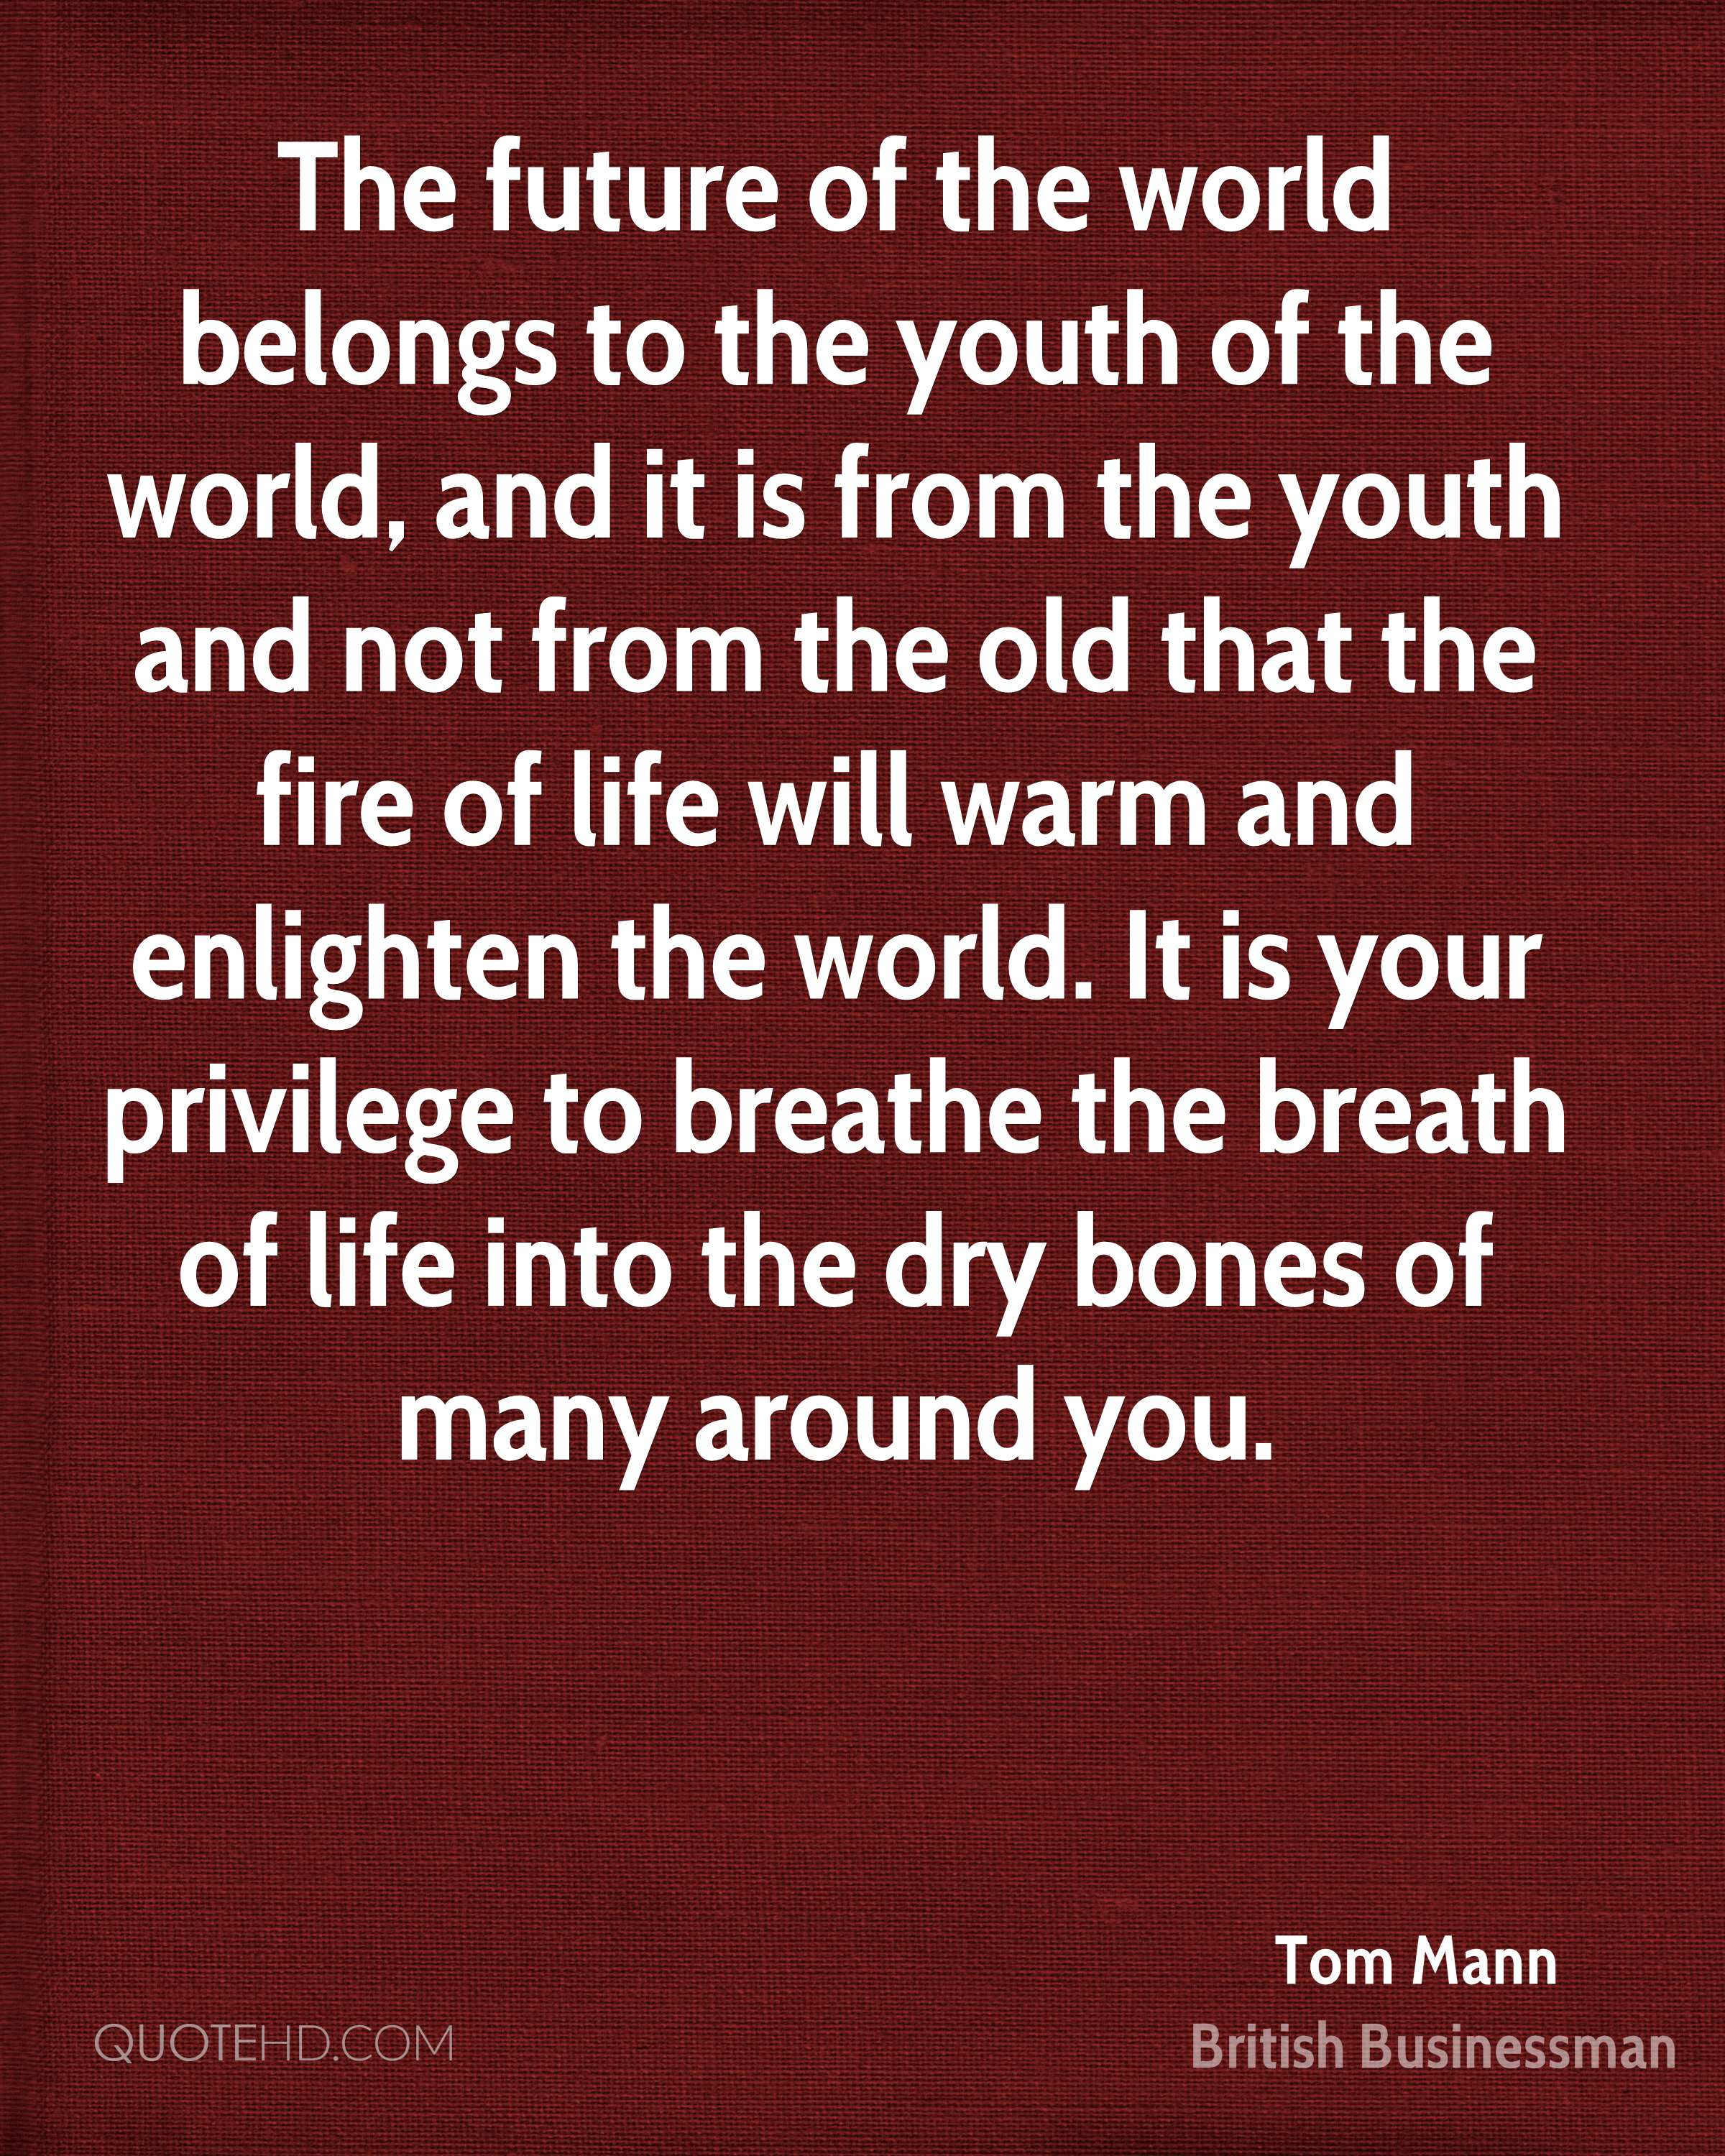 The future of the world belongs to the youth of the world, and it is from the youth and not from the old that the fire of life will warm and enlighten the world. It is your privilege to breathe the breath of life into the dry bones of many around you.